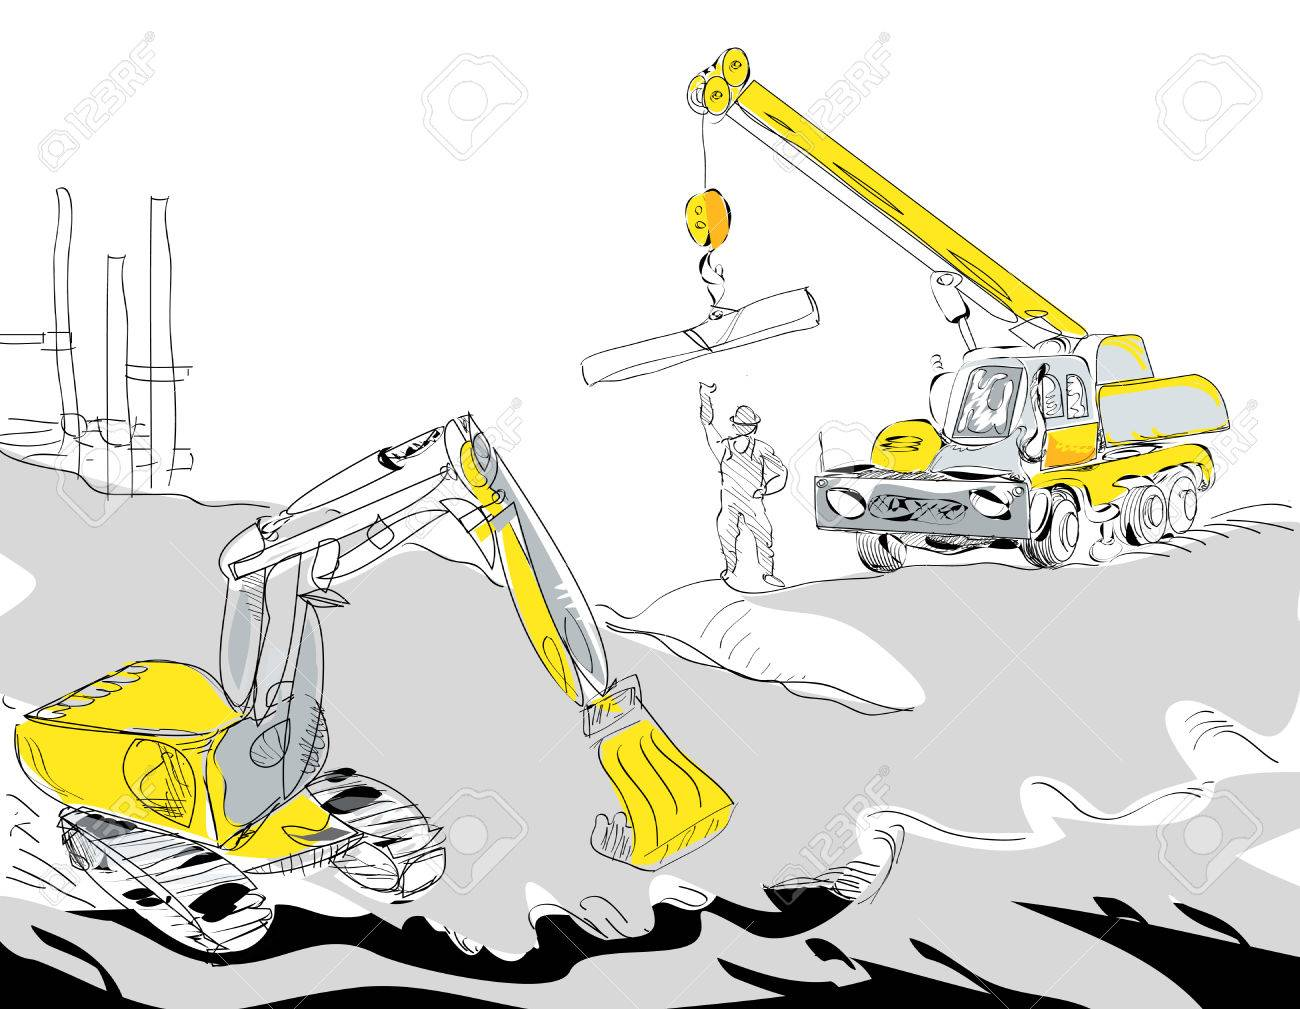 hight resolution of hand drawn illustration of a hydraulic excavator and mobile crane working construction concept stock vector